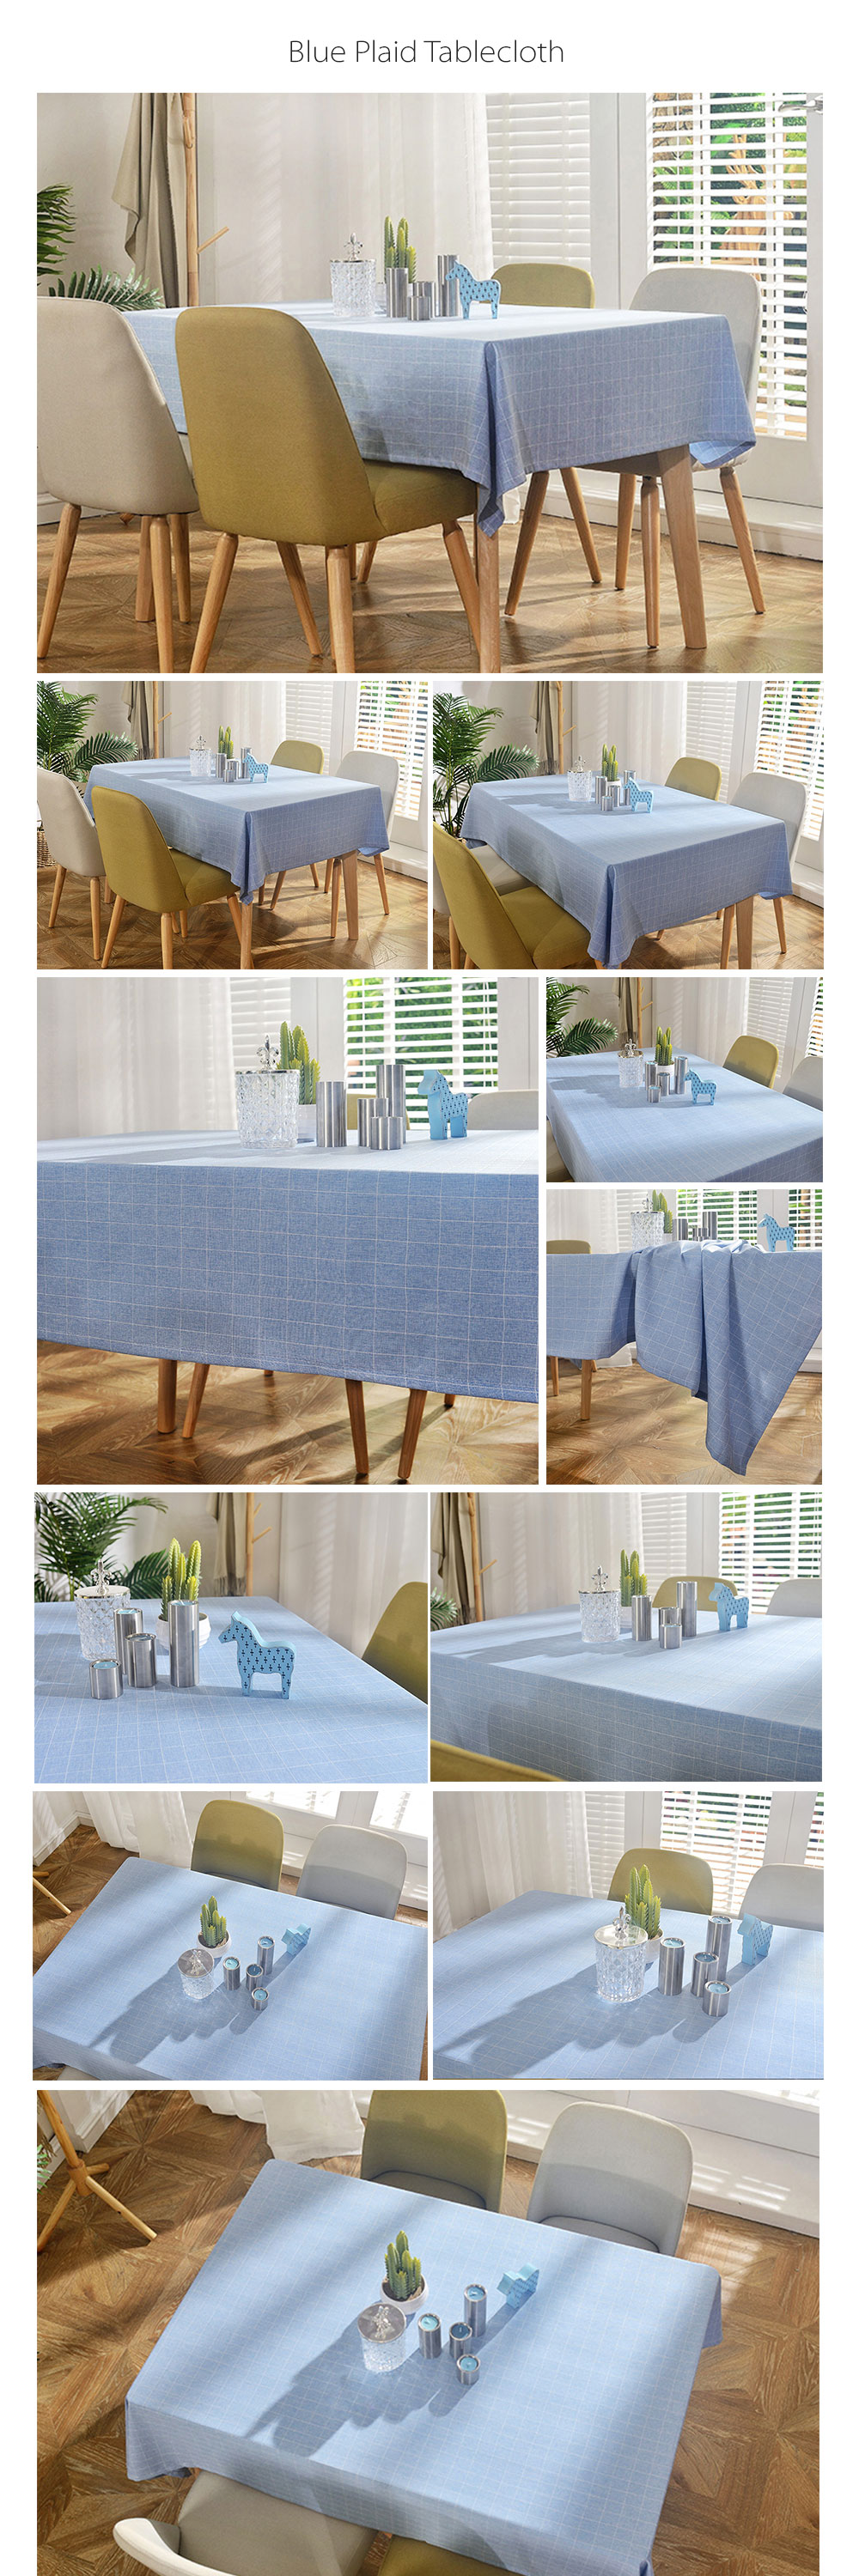 Plaid Tablecloth Made of Linen